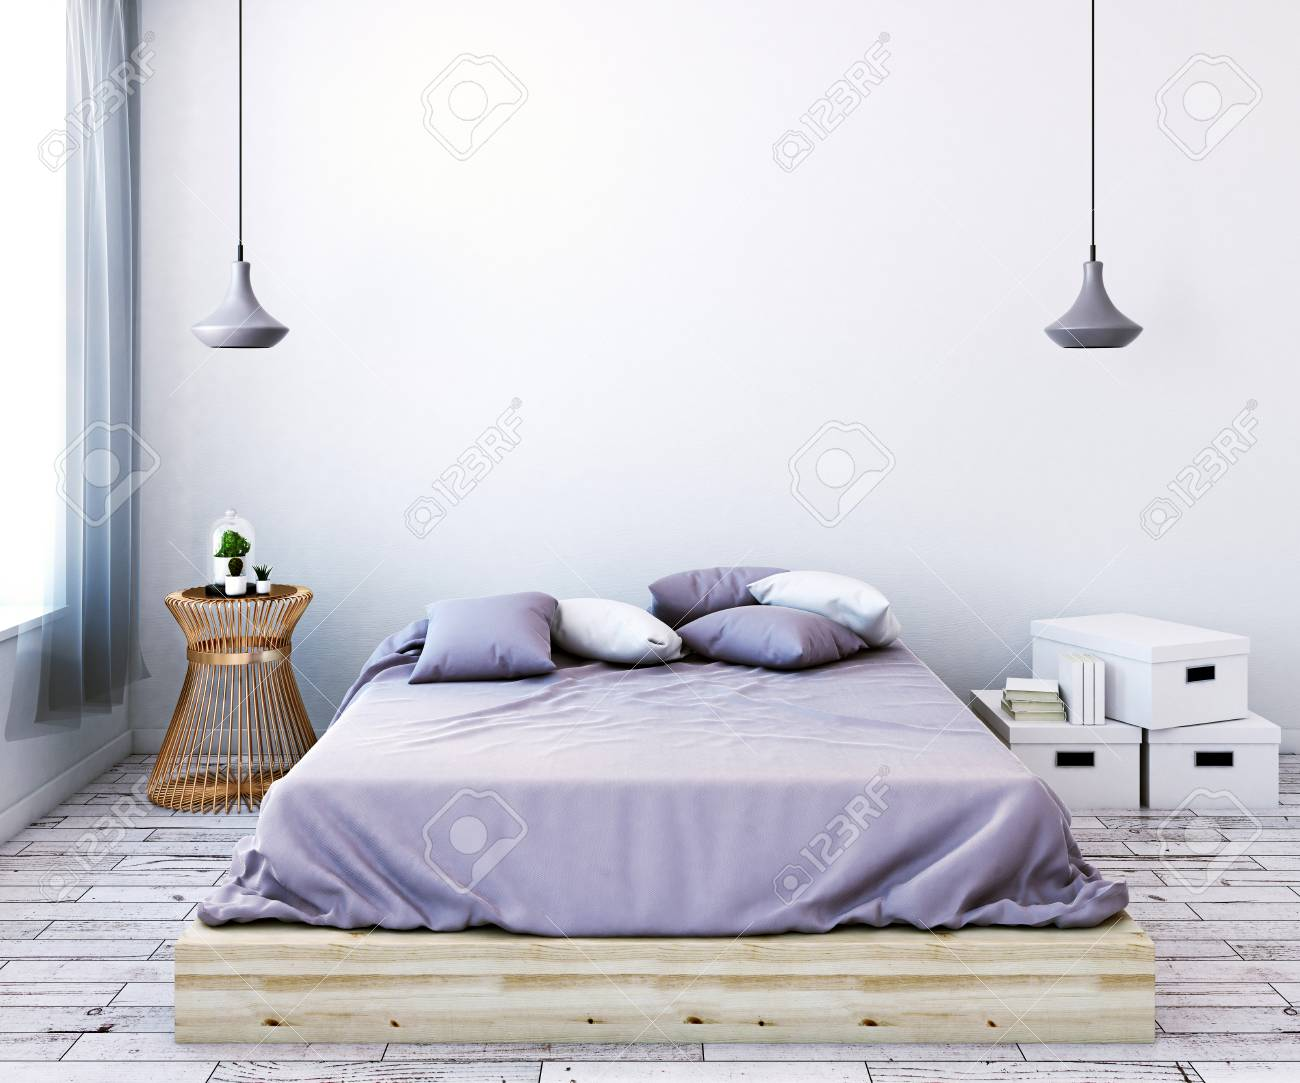 womens bedroom furniture. Front View Of Modern Light Female Bedroom With Empty Wall, Furniture And Window Curtain Womens O